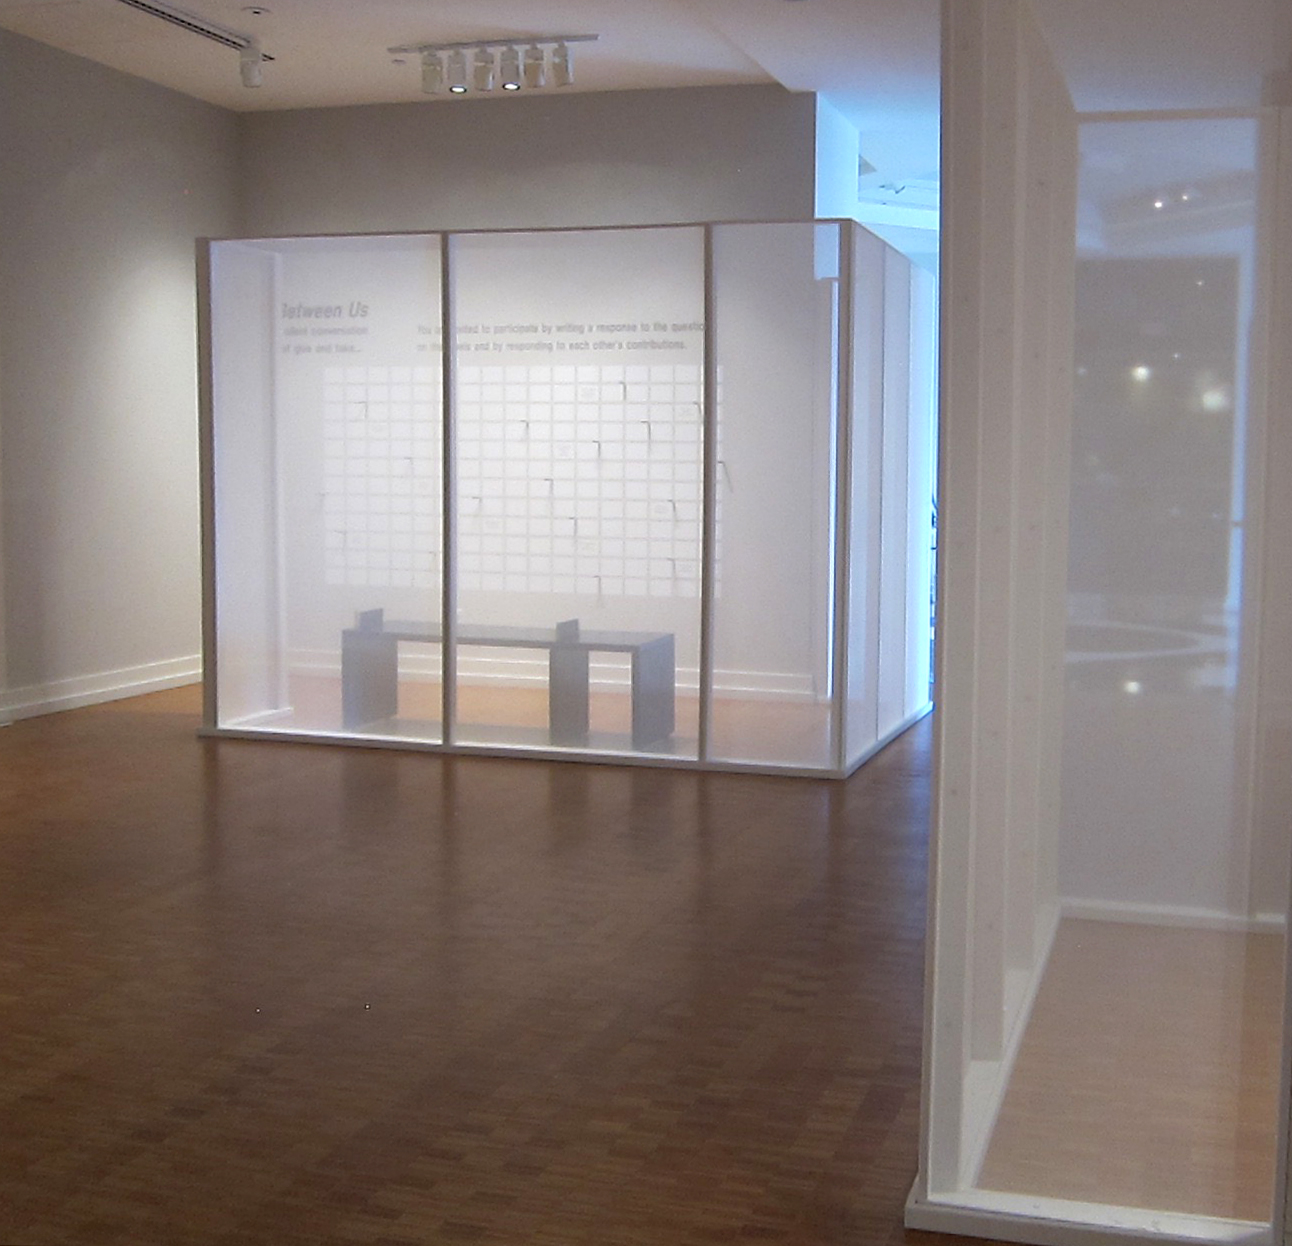 Between Us  (left) and  Social Blanket  (right), Gallery of Contemporary Art 121, UCCS, Colorado Springs, Colorado, 2015    Jane Lackey: Points of Contact    included site-specific installations bordered by semi-transparent scrim walls. Placed at opposite and diagonal sides of the middle gallery, the semi-private spaces for writing ( Between Us ) and drawing ( Social Blanket ) provided a collective interface for participants over the duration of the exhibition.